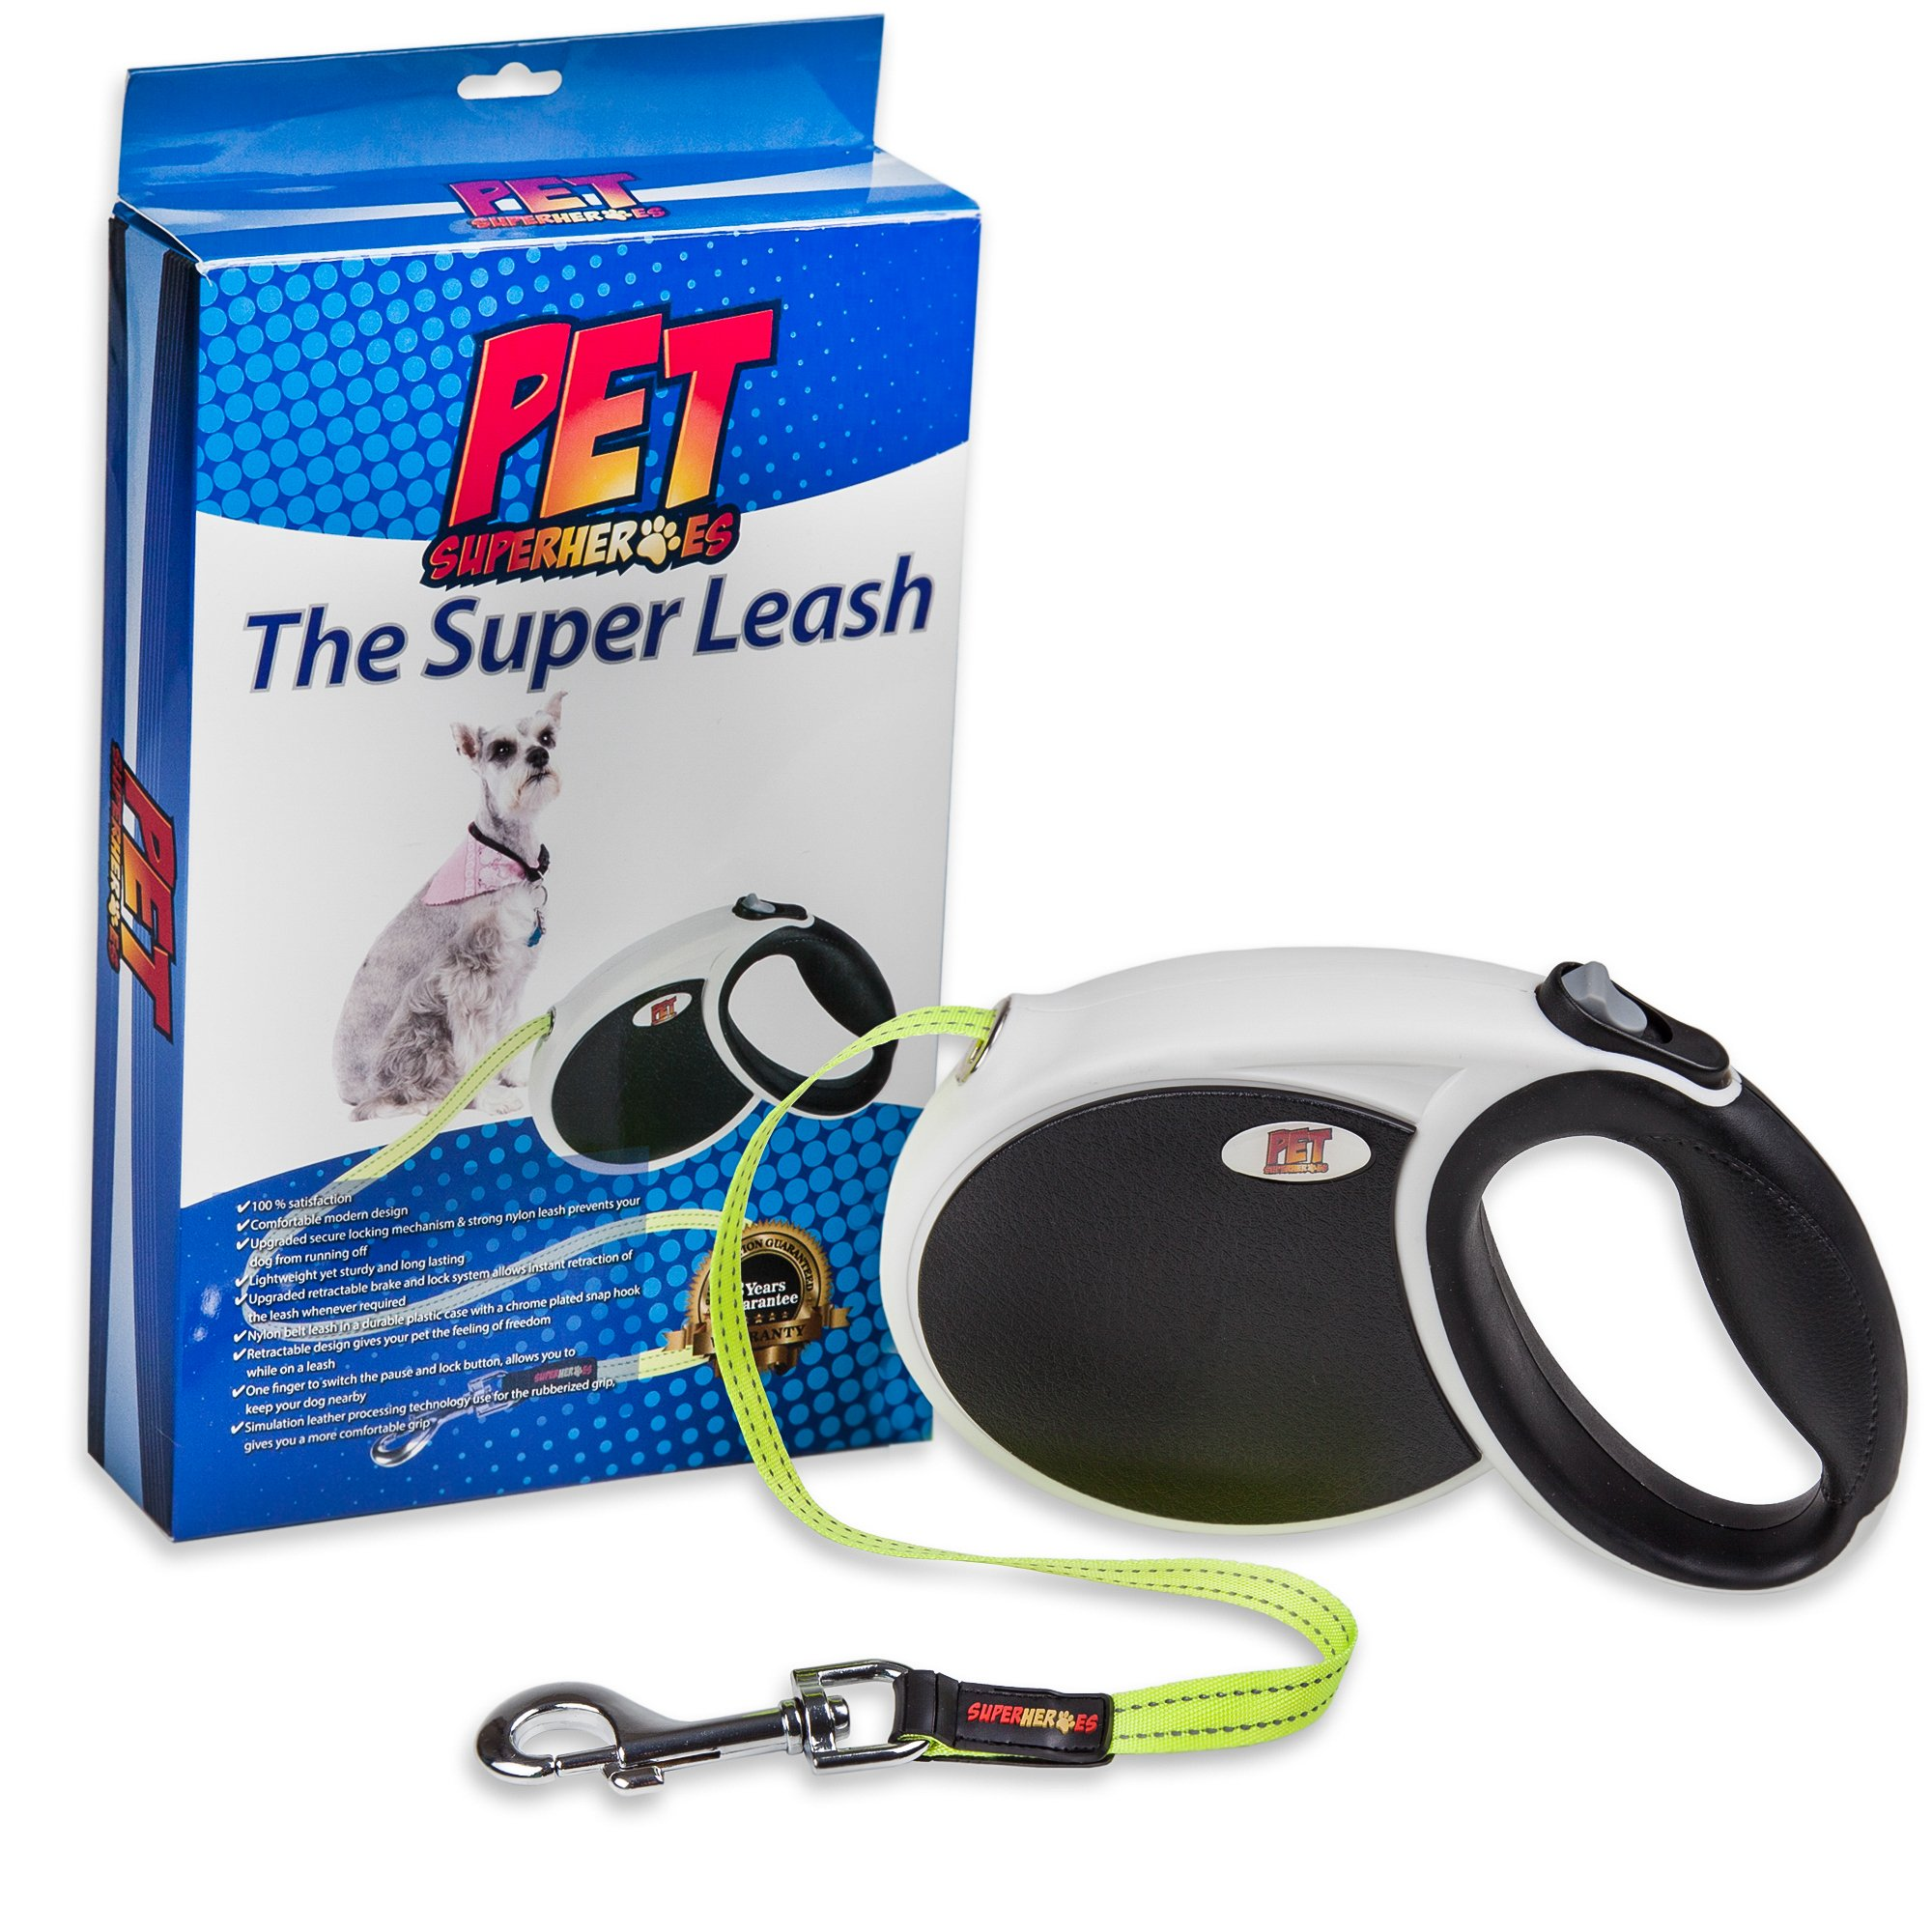 Pet Superheroes Dog Retractable Leash - Best Dog Leash for Training, Running, Walking & Use in the Backyard - Reflective for Safety, Premium Quality Pet Supply (Large)